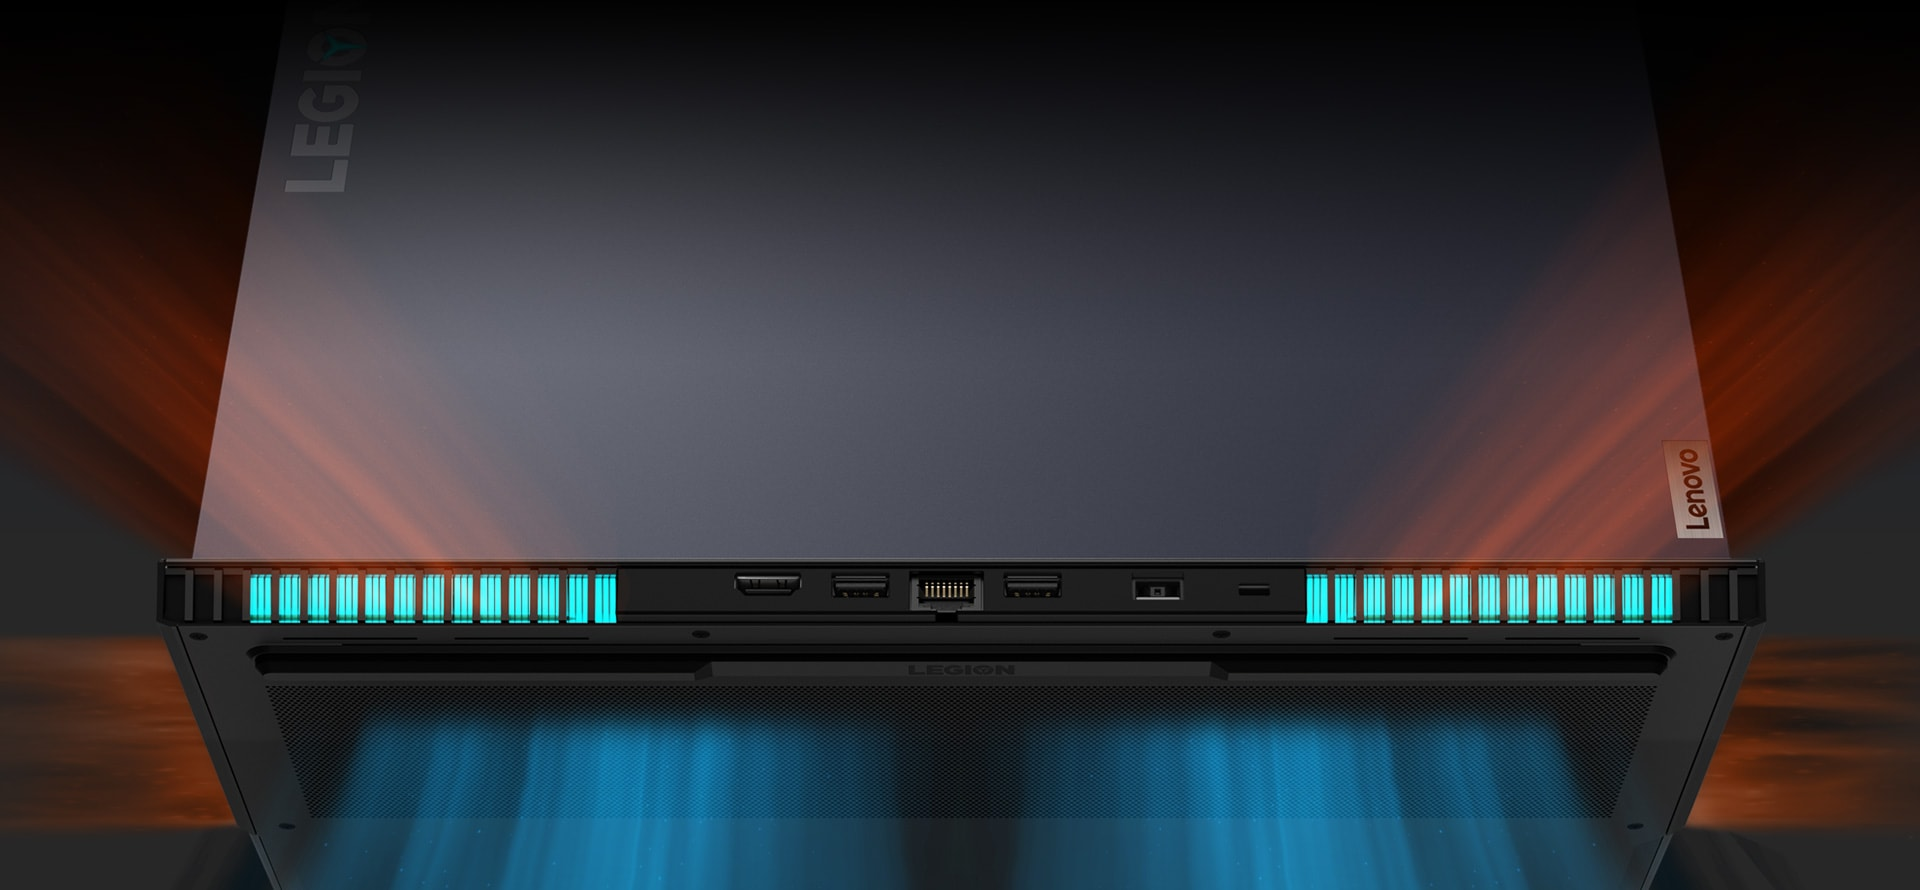 Rearview of Lenovo Legion coldfront 2.0 thermal system